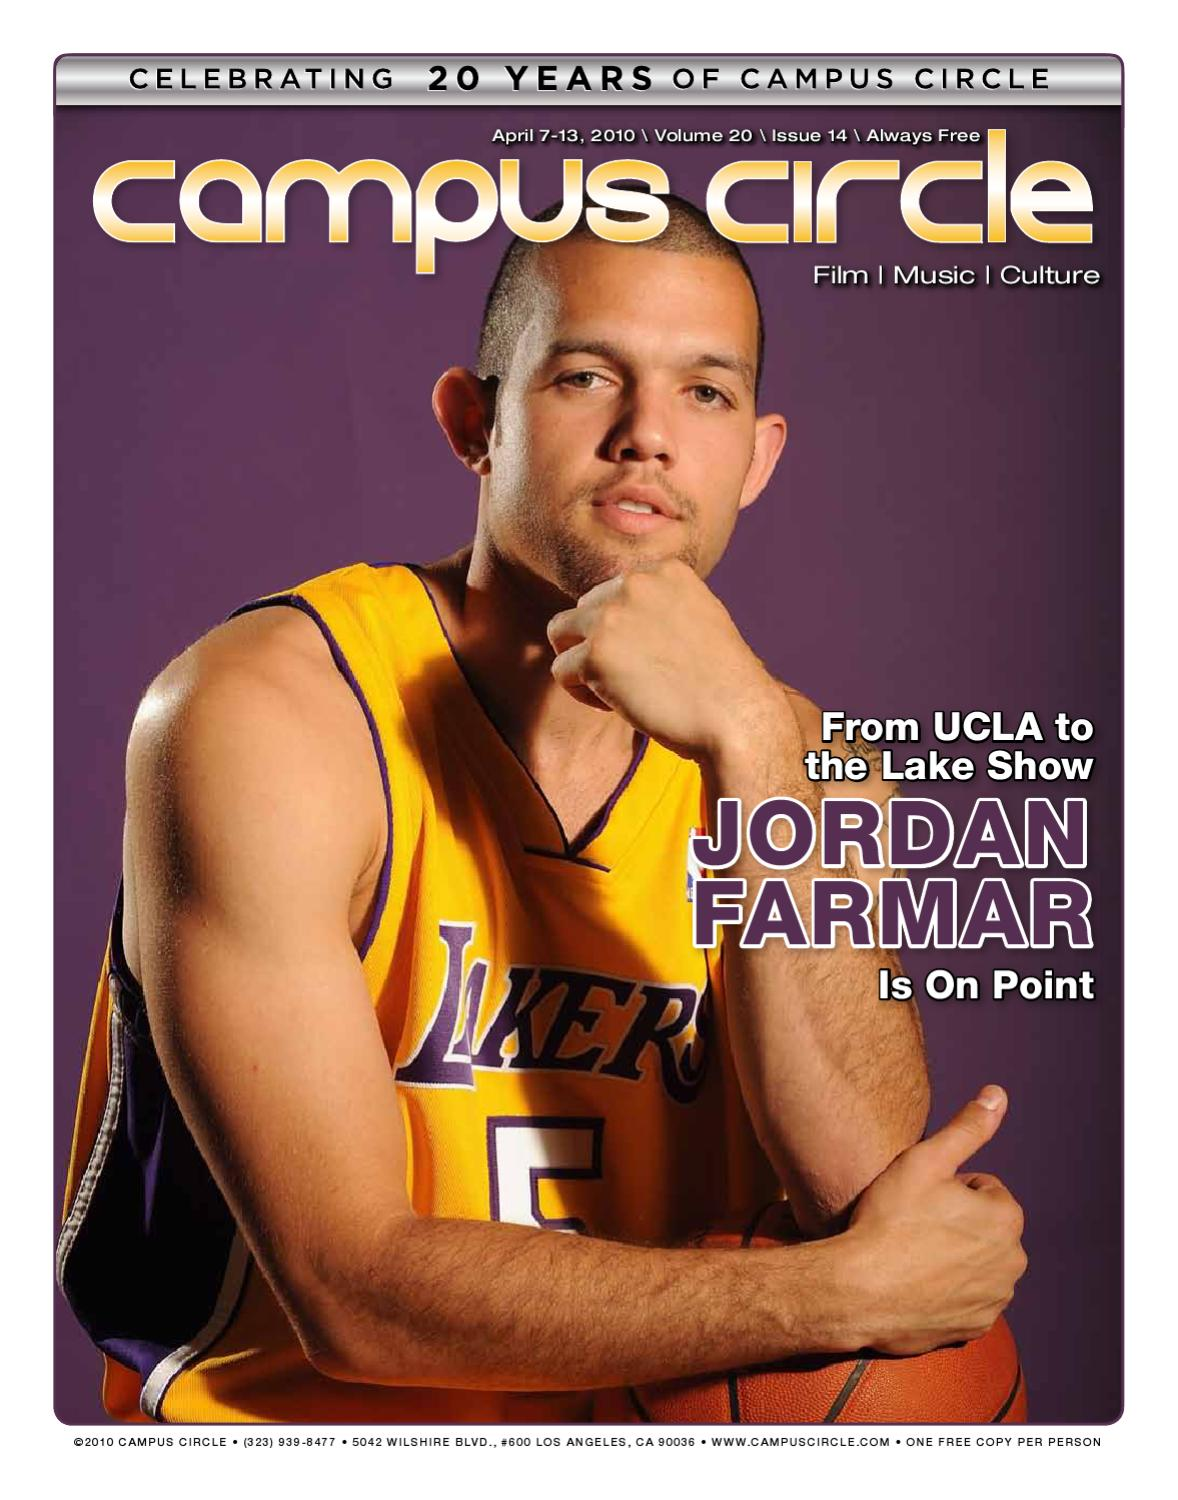 106619f9cd2c Campus Circle Newspaper Vol. 20 Issue 14 by Campus Circle - issuu